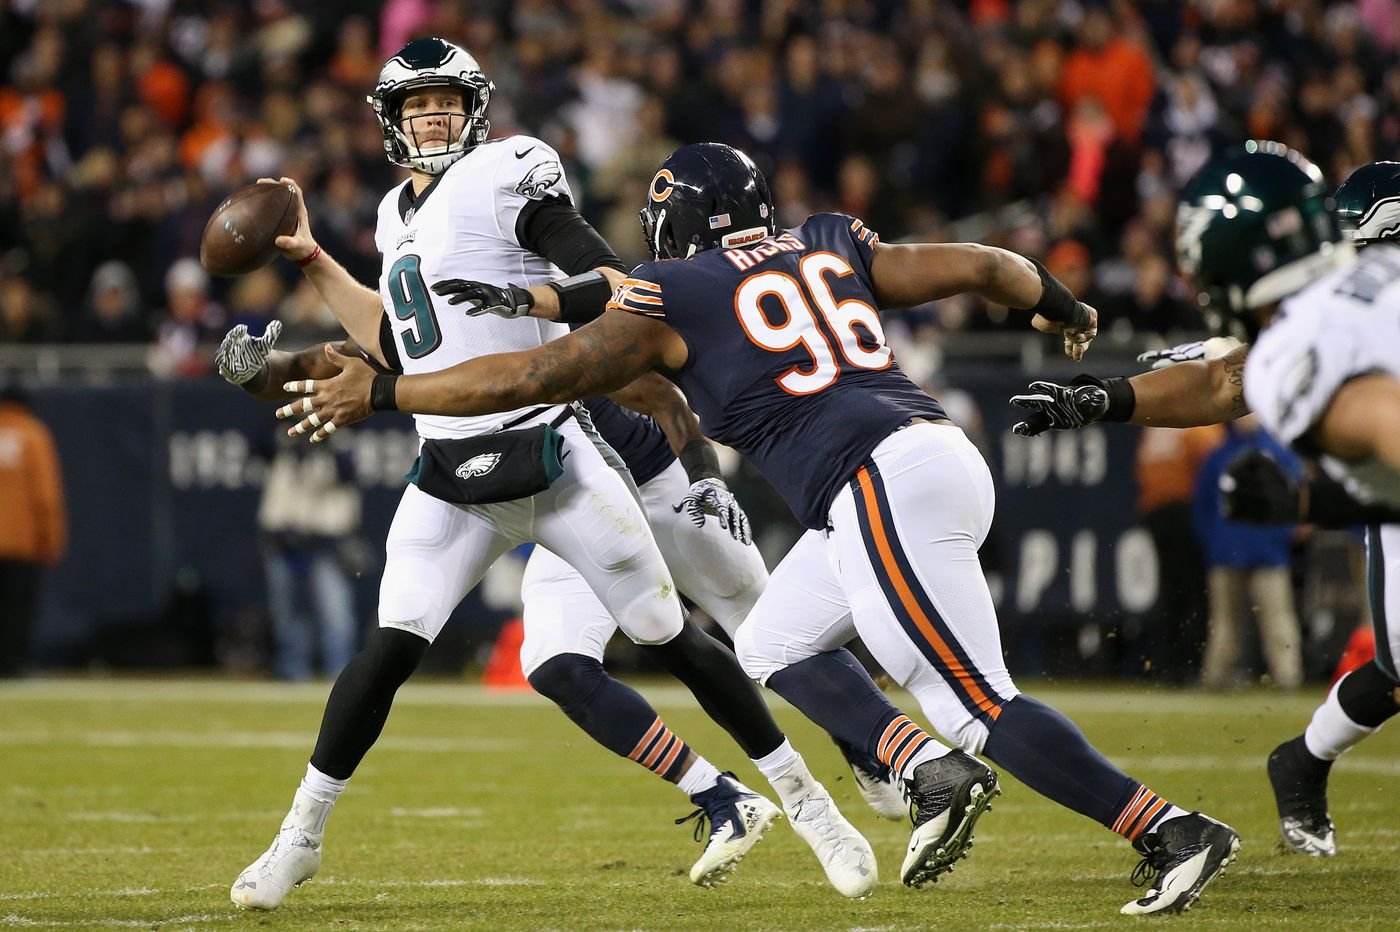 Eagles 16, Bears 15: Nick Foles leads game-winning drive, Cody Parkey misses late field goal and Birds advance in playoffs